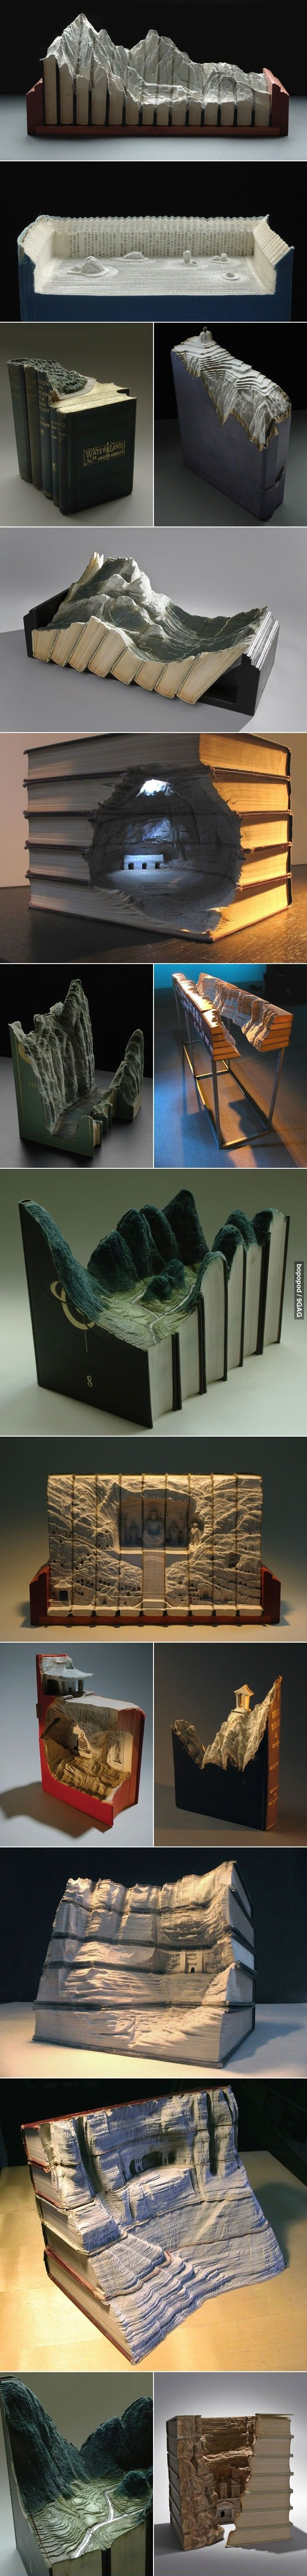 Book Carvings by Guy Laramee